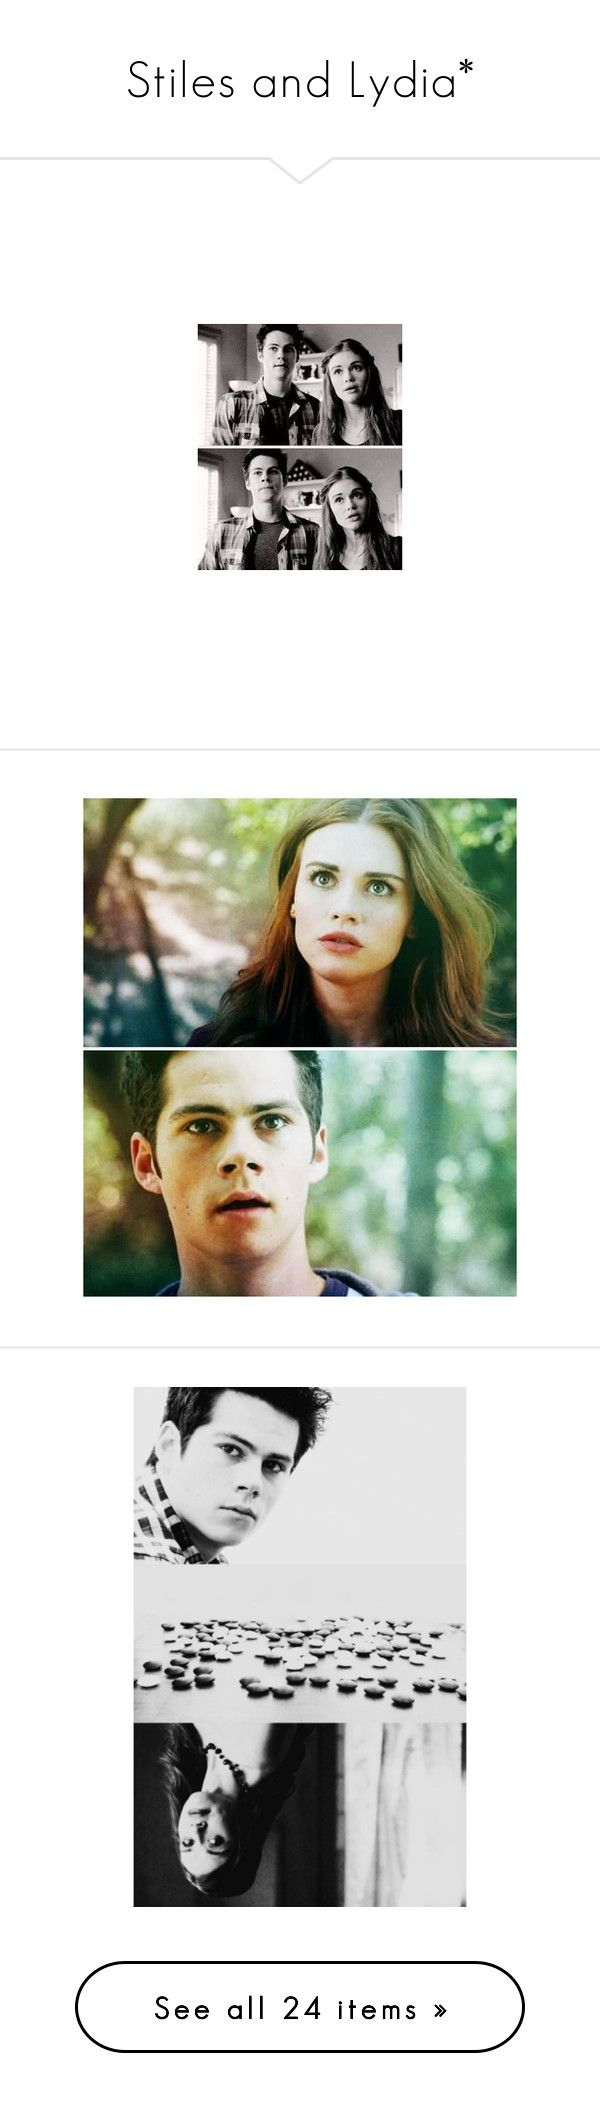 """""""Stiles and Lydia*"""" by baciunaite-monika ❤ liked on Polyvore featuring teen wolf, dylan o'brien, holland, people - holland roden, tv - teen wolf, home, home decor, holland roden, stiles and lydia"""